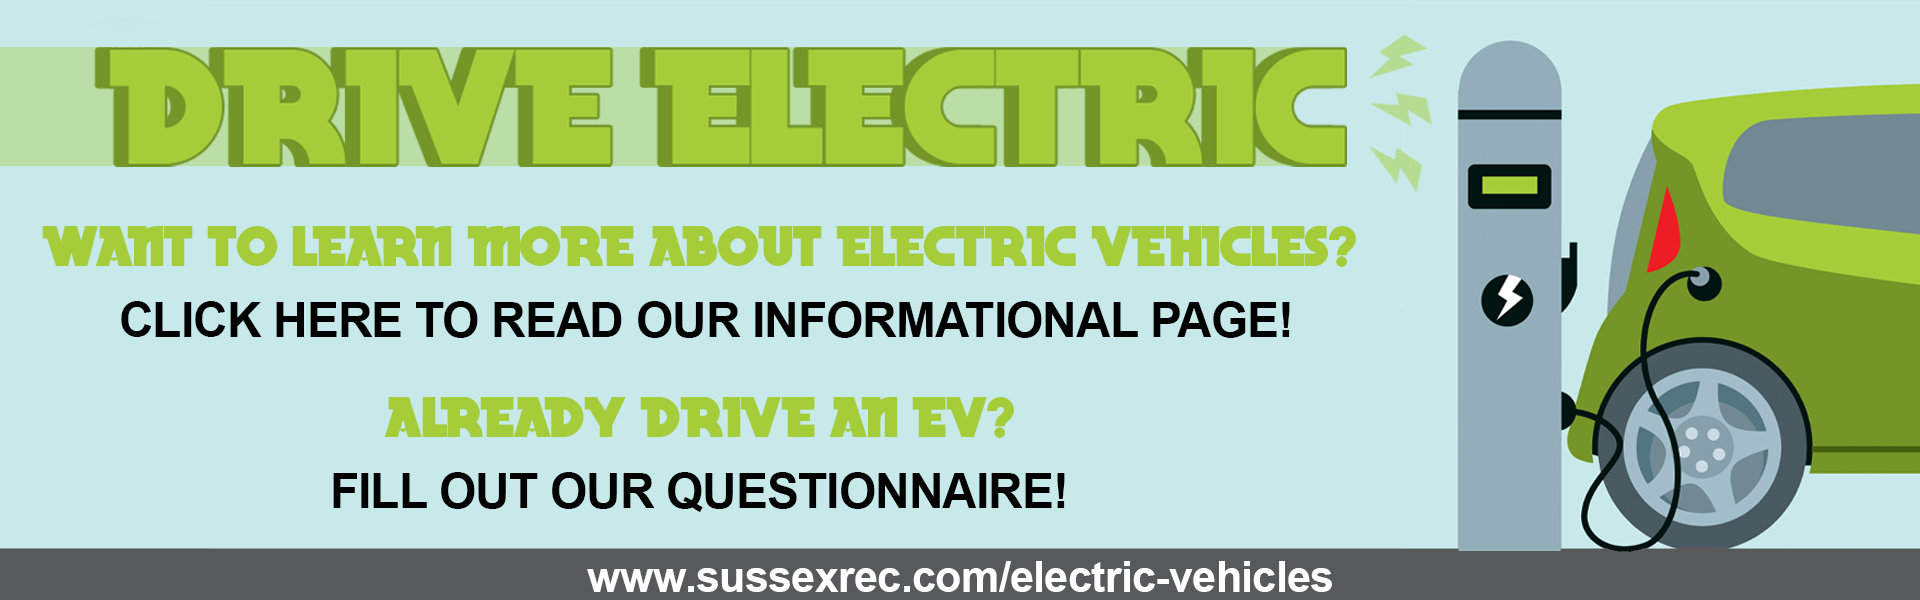 DRIVE ELECTRIC: All About Electric Vehicles